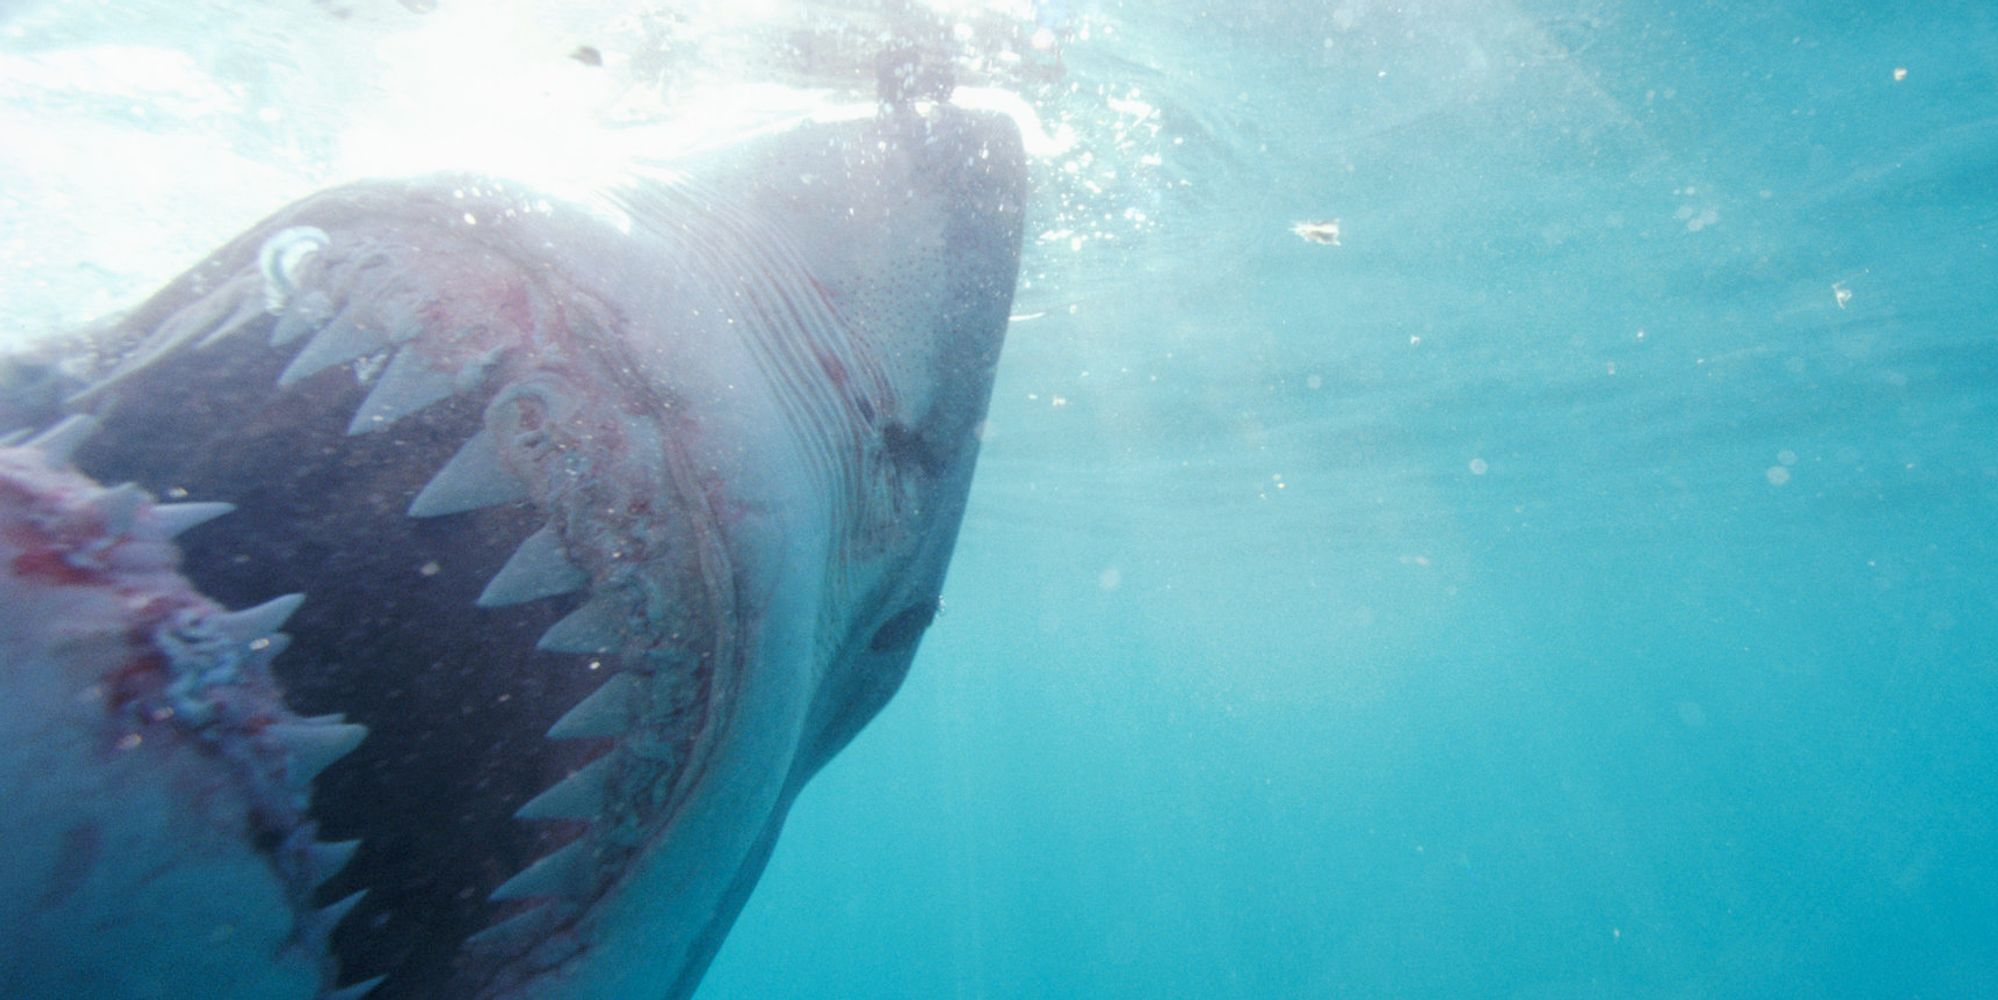 U.S. Surf Champ Kelly Slater Calls For Shark Cull After Boogie-Boarder Death